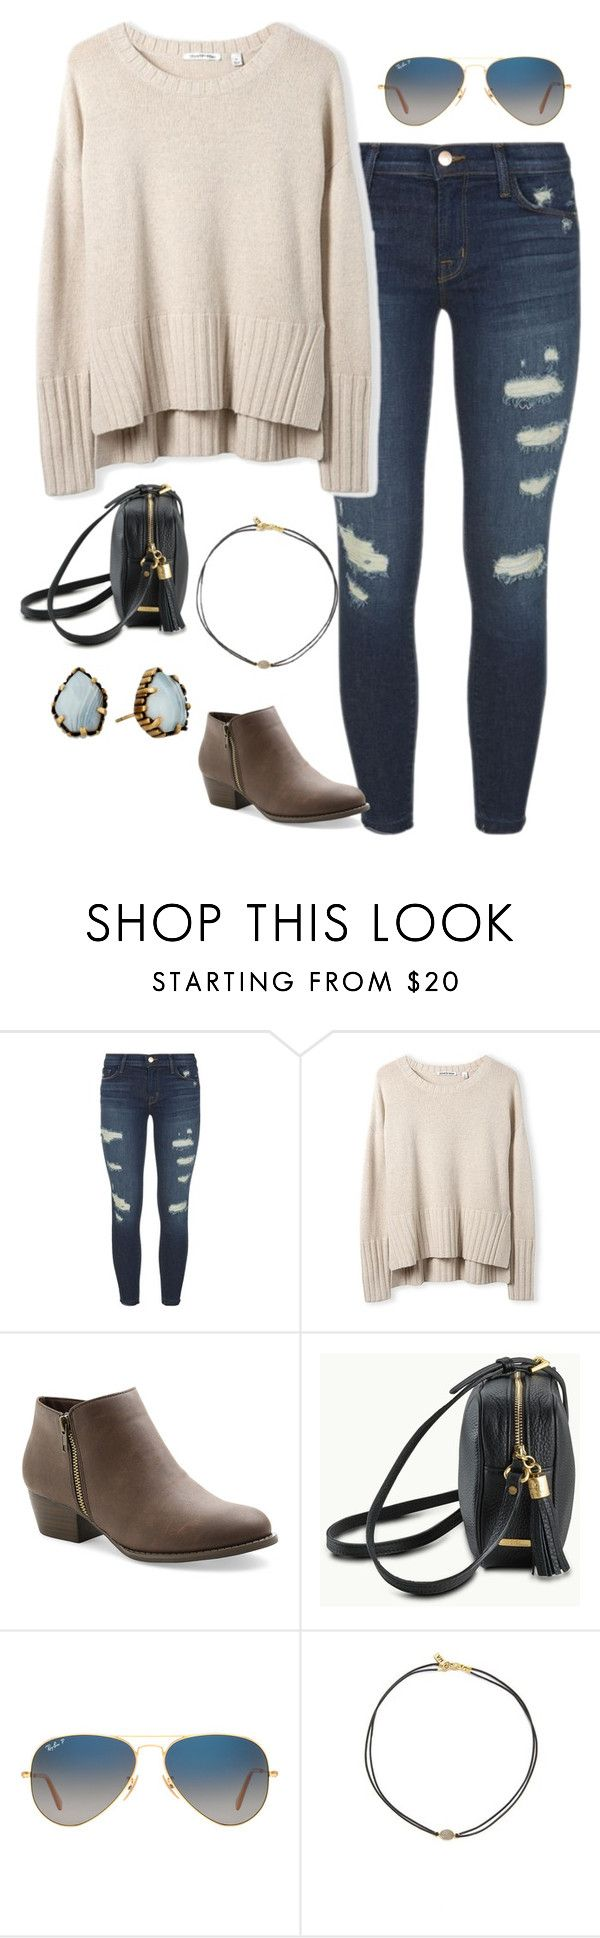 """""""Untitled #1737"""" by elephant10 ❤ liked on Polyvore featuring J Brand, UNIONBAY, GiGi New York, Ray-Ban, Vanessa Mooney and Kendra Scott"""